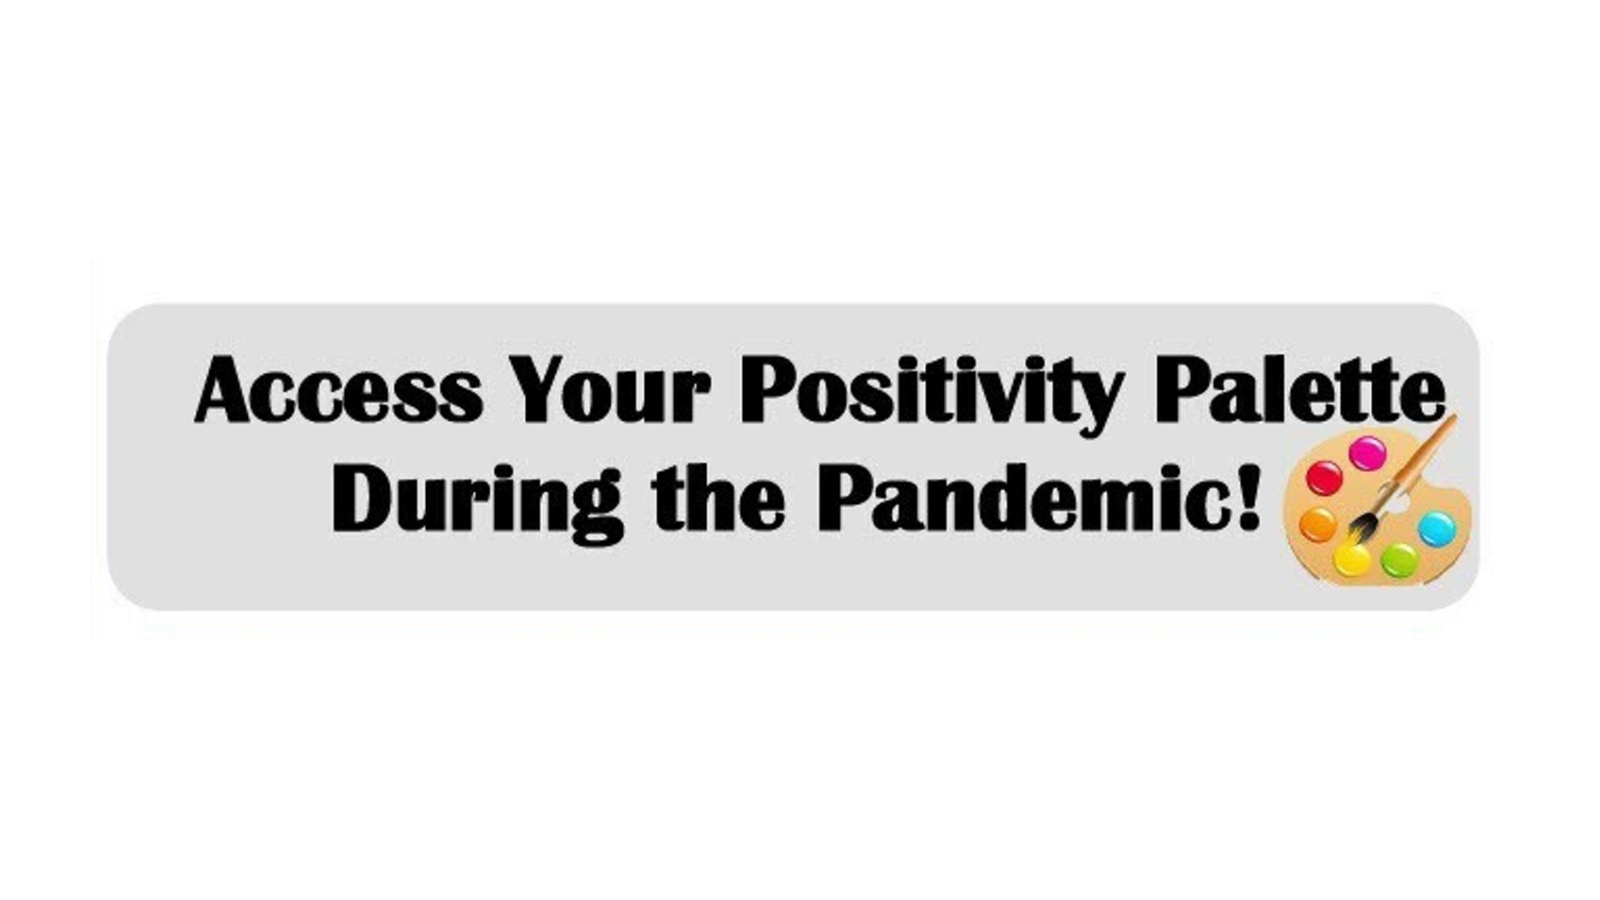 Access your Positivity Palette during the Pandemic